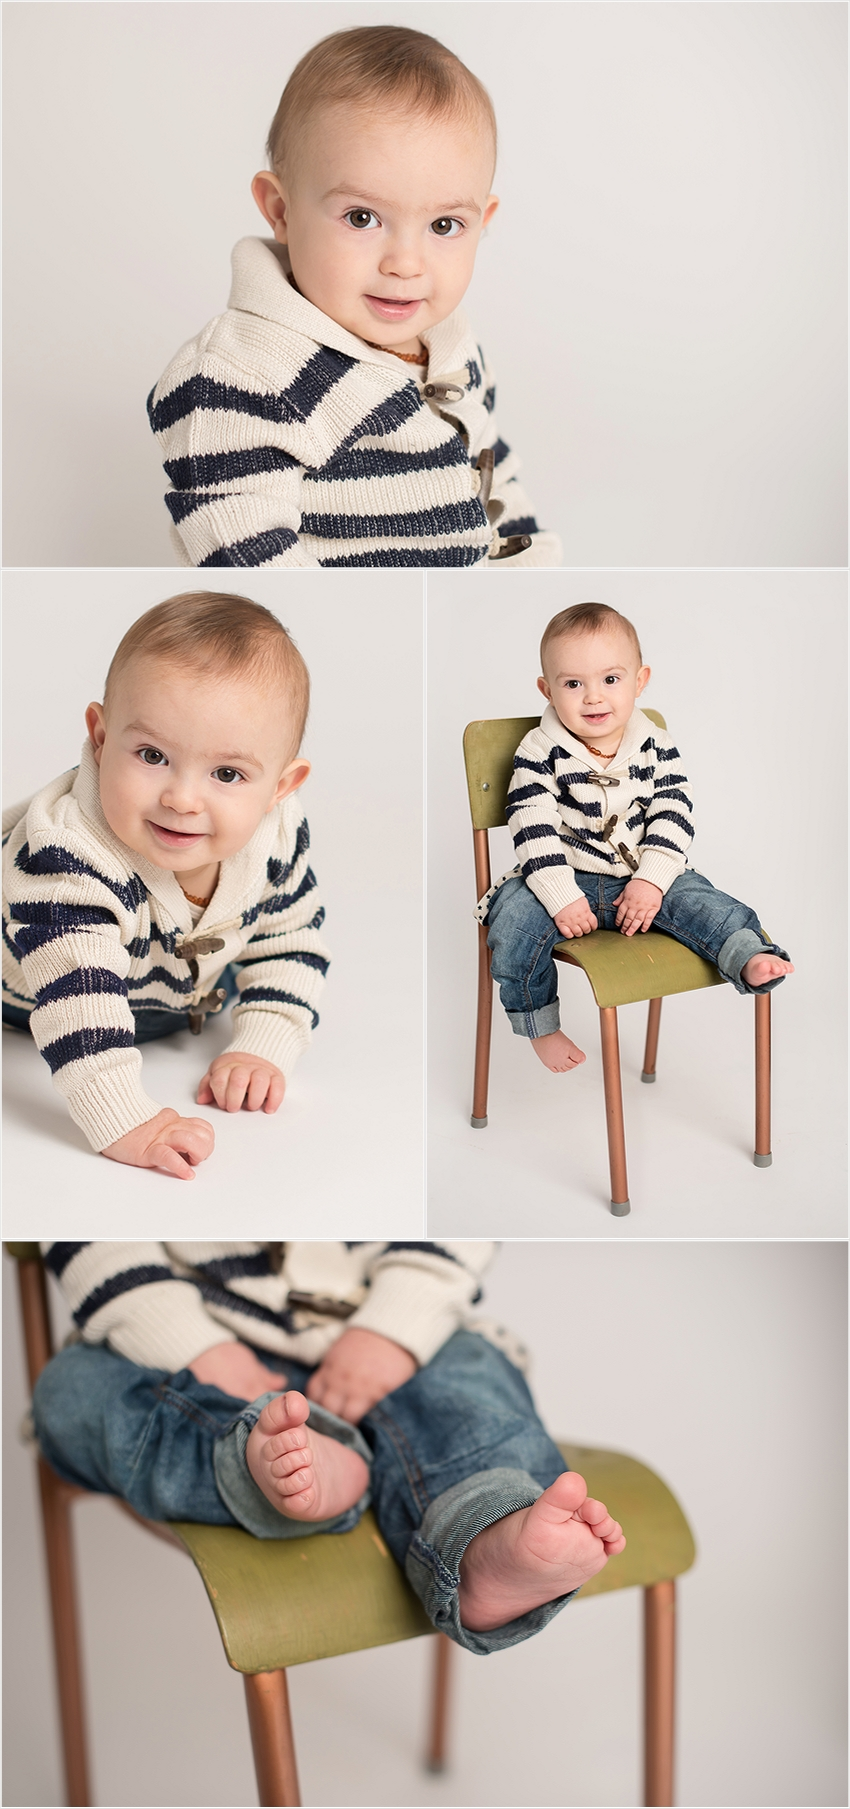 Abbotsford Family Photographer One Year Old Luca 001 (Side 1)